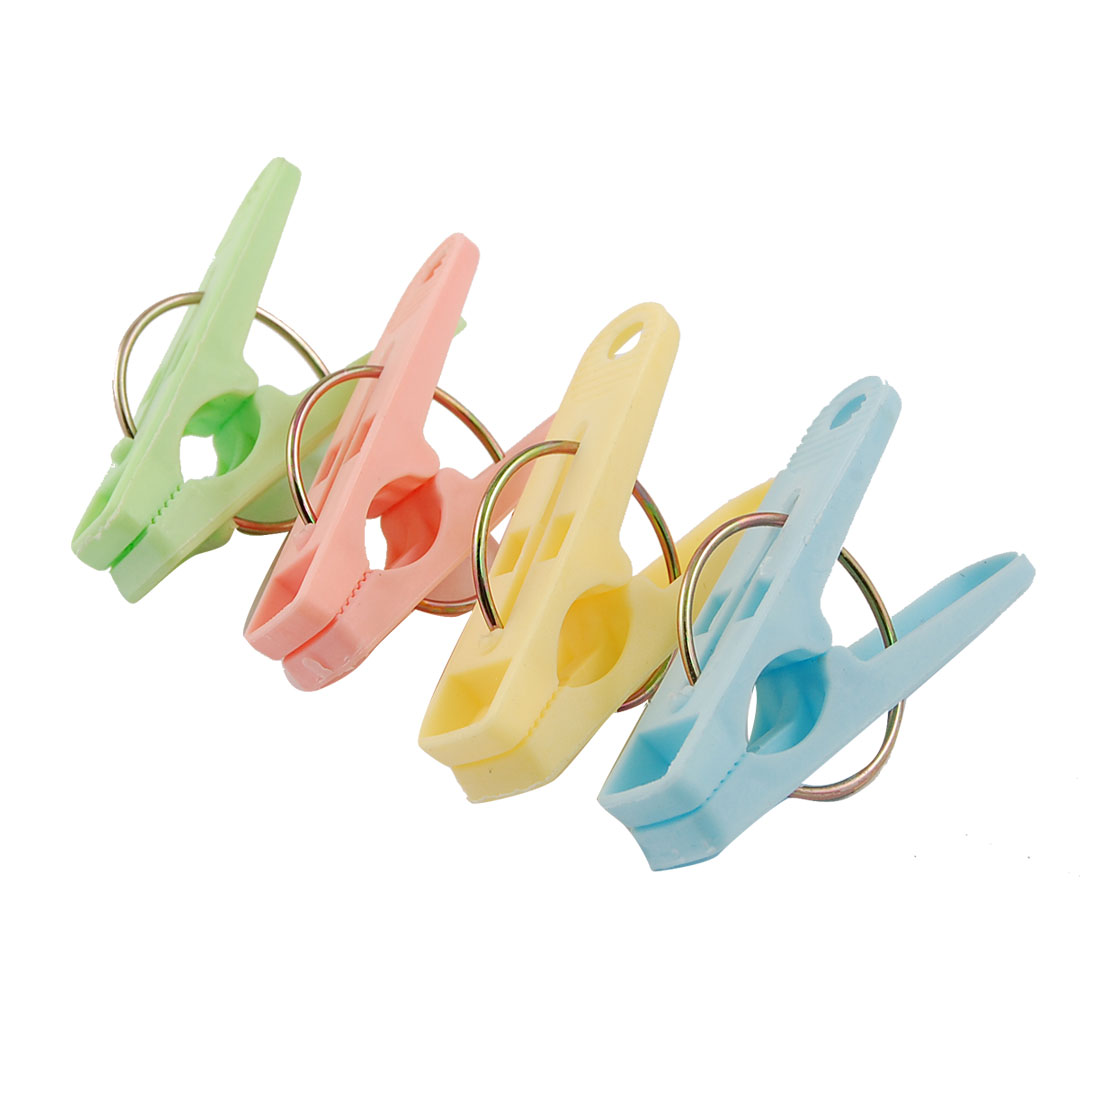 20 Pcs Assortment Colors Plastic Clothespins Clothes Pegs Socks Clips